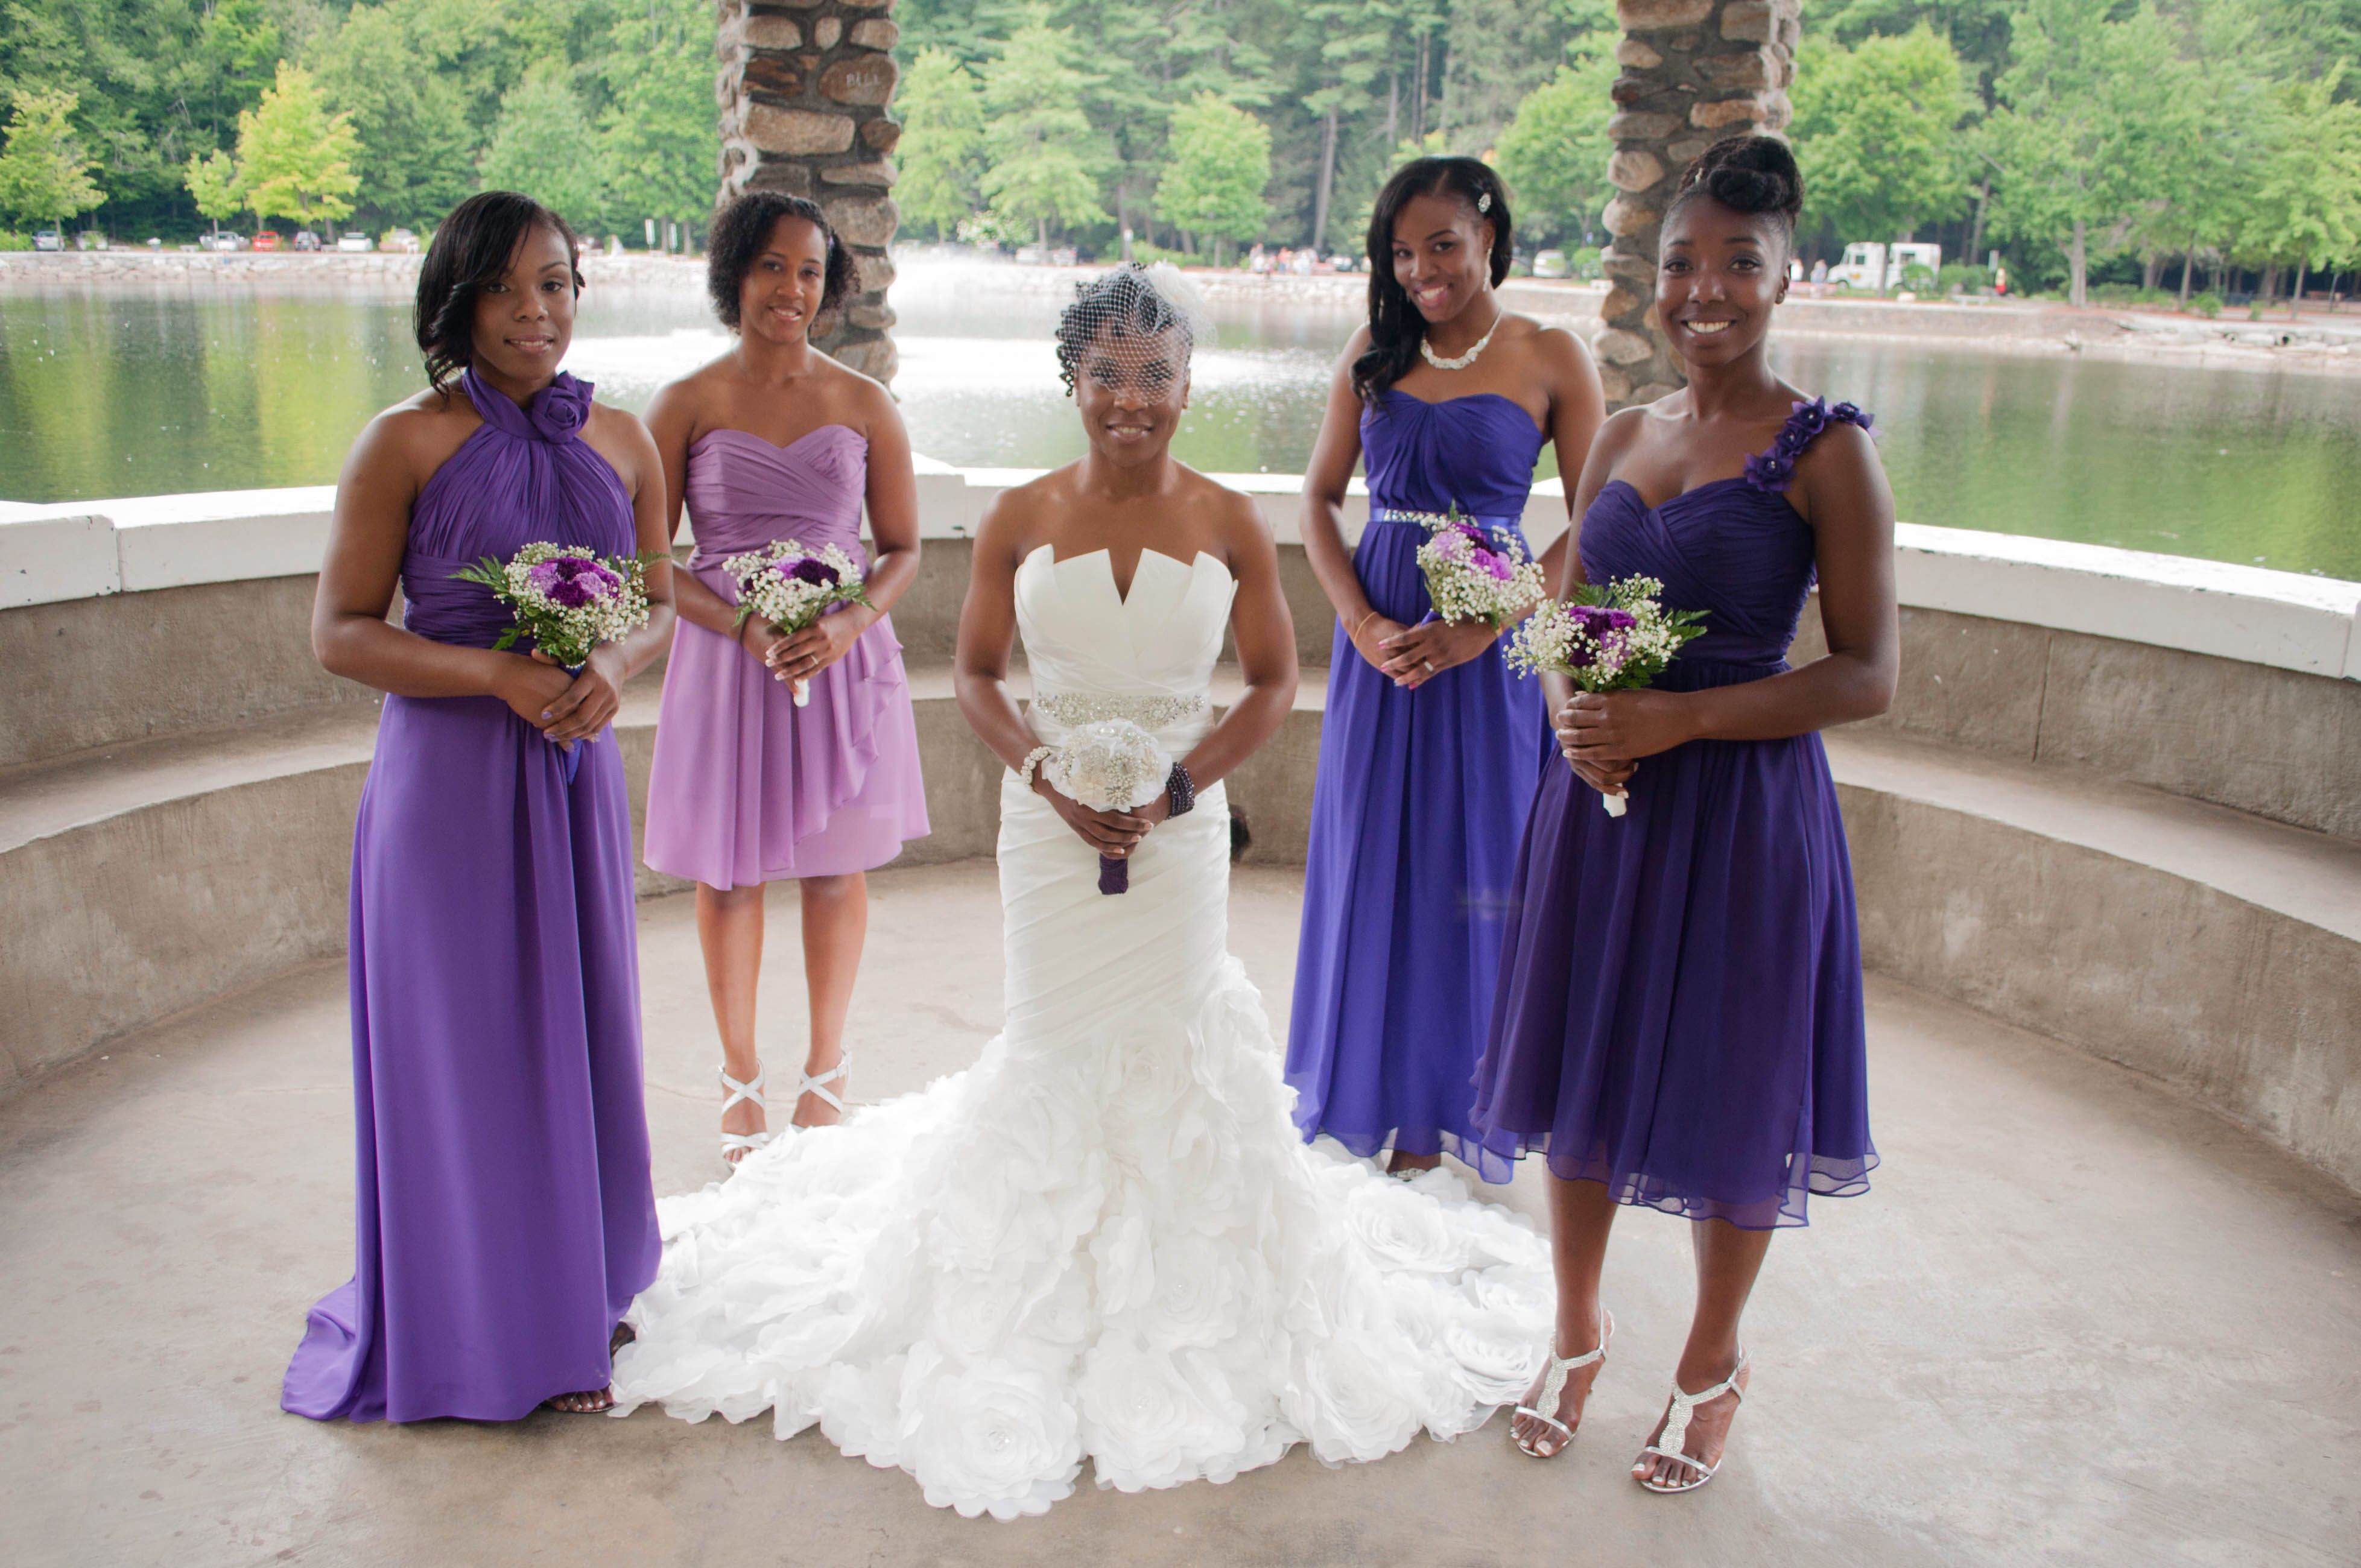 Shades Of Purple Wedding Theme Bridesmaid In Different Shades Of